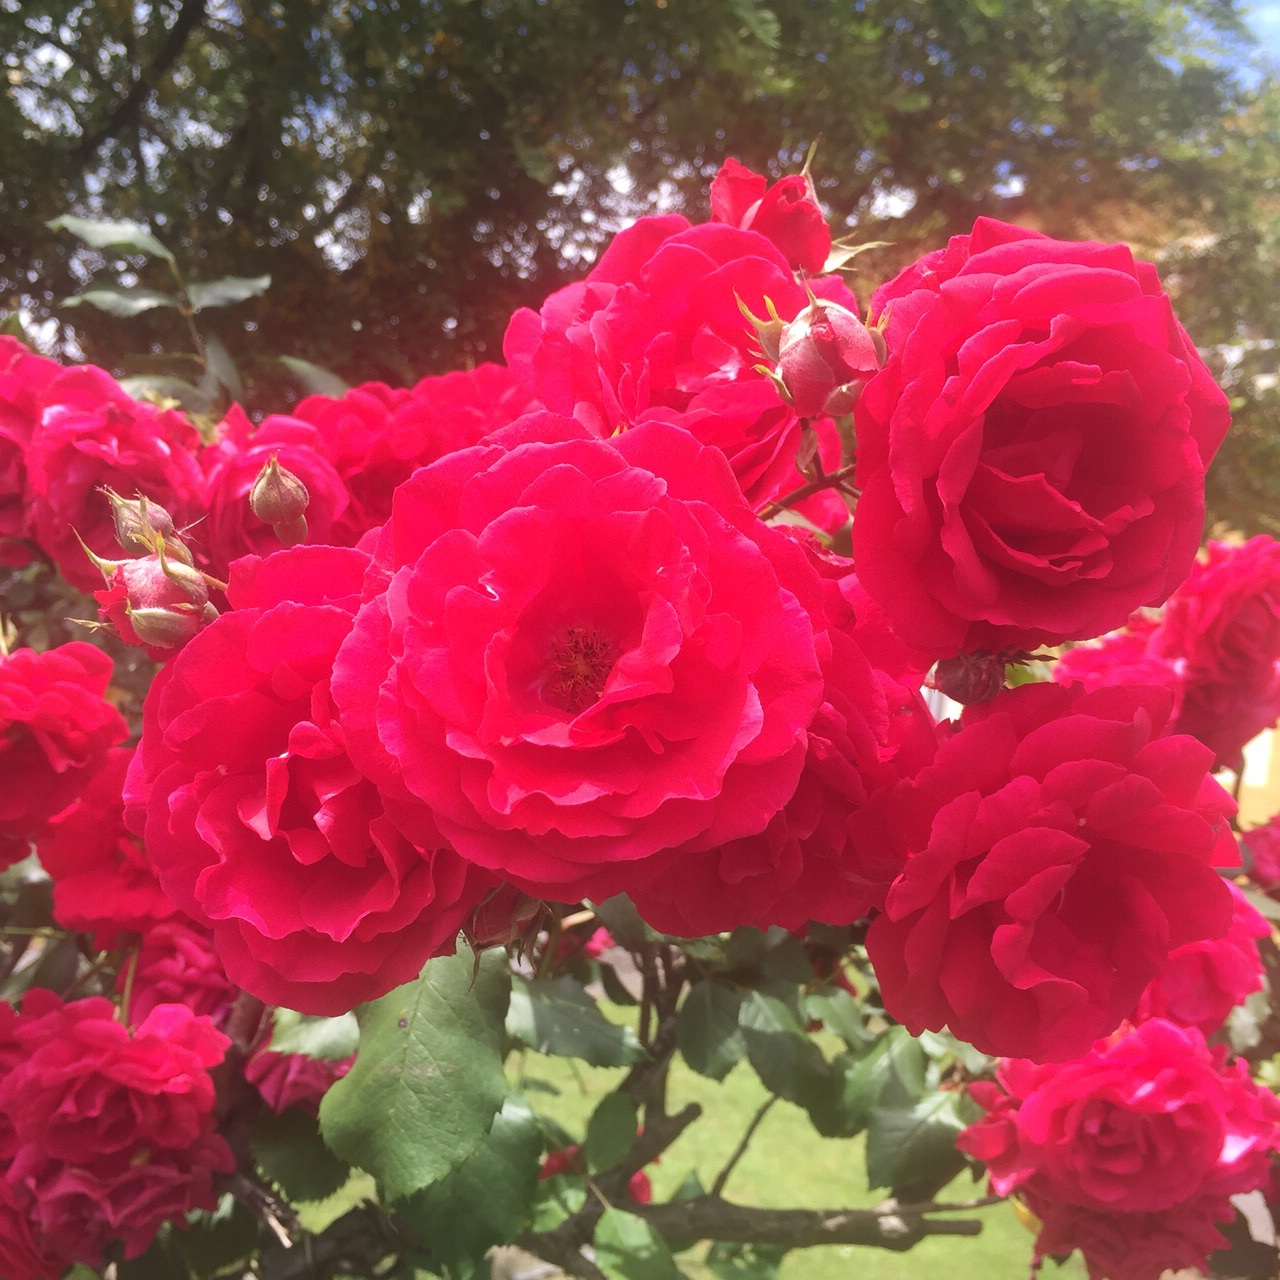 More red roses